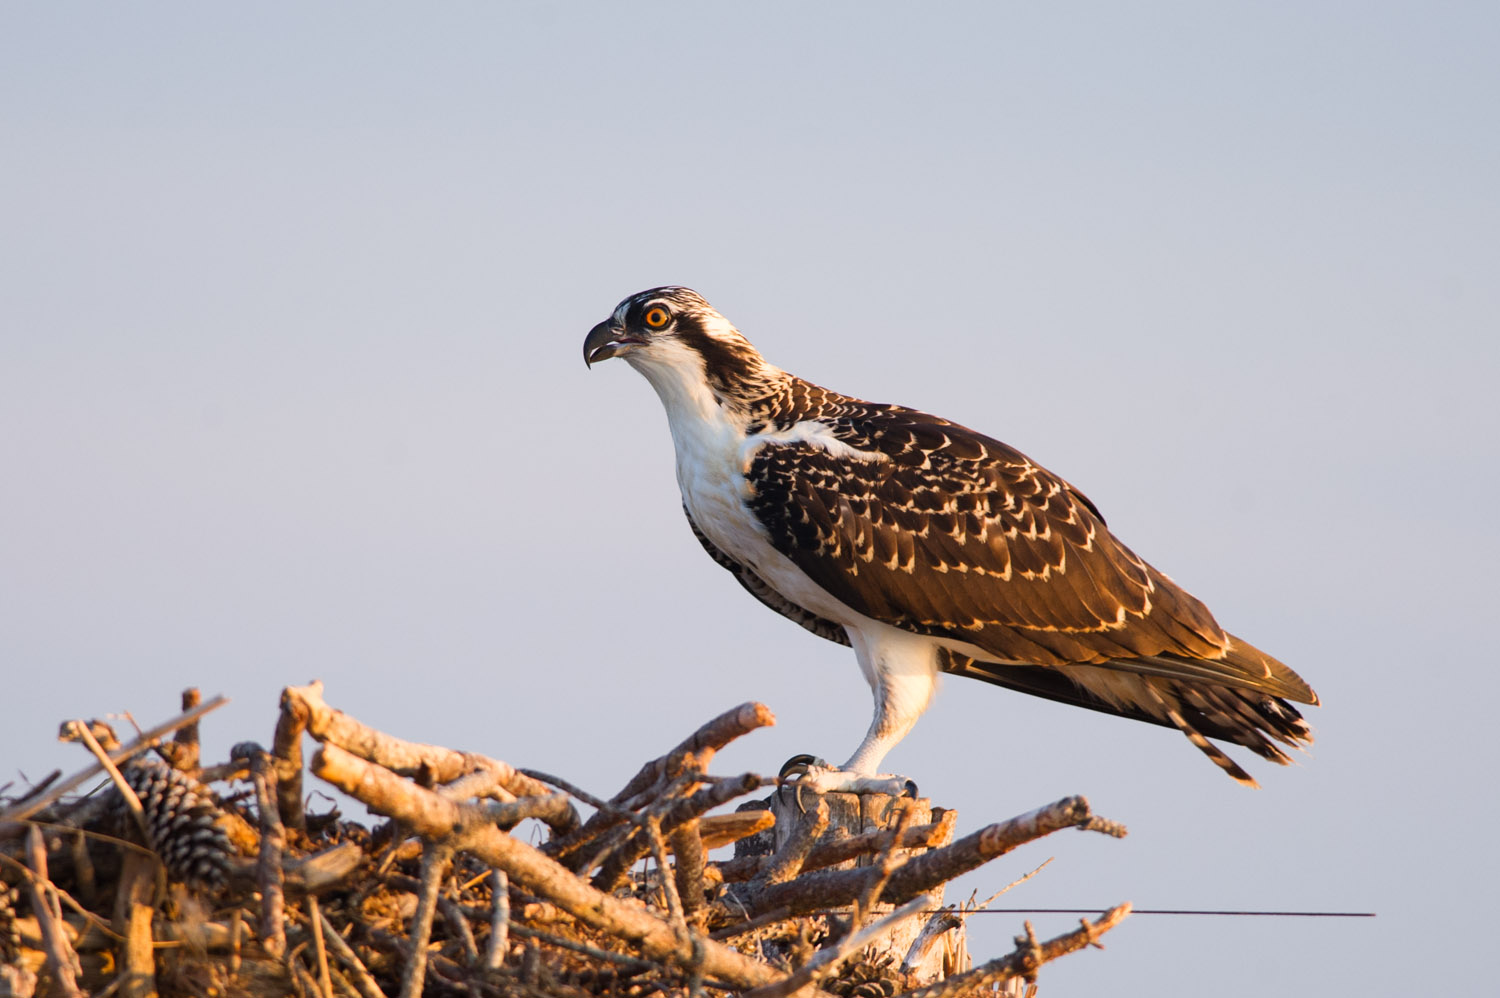 A n Osprey sitting on its nest as the sun starts getting low.